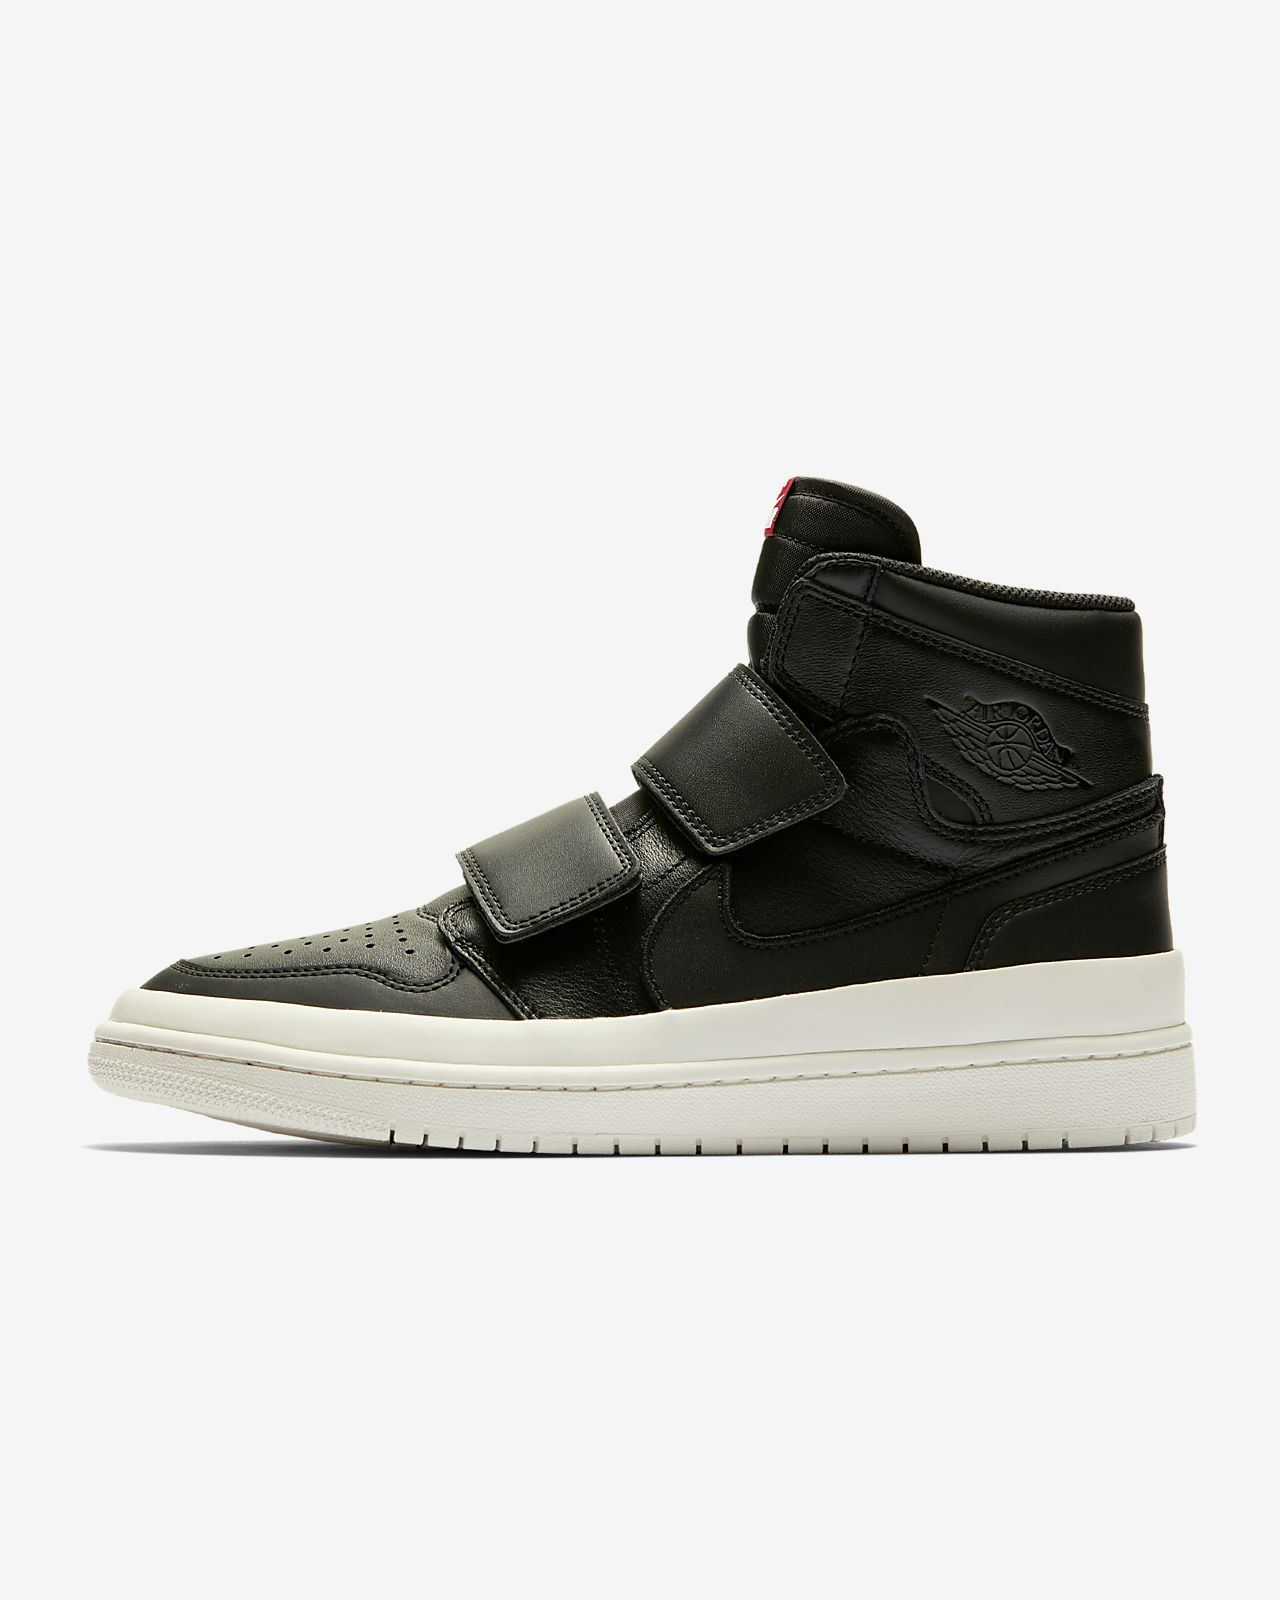 quality design e99e9 3143b ... Chaussure Air Jordan 1 Retro High Double Strap pour Homme